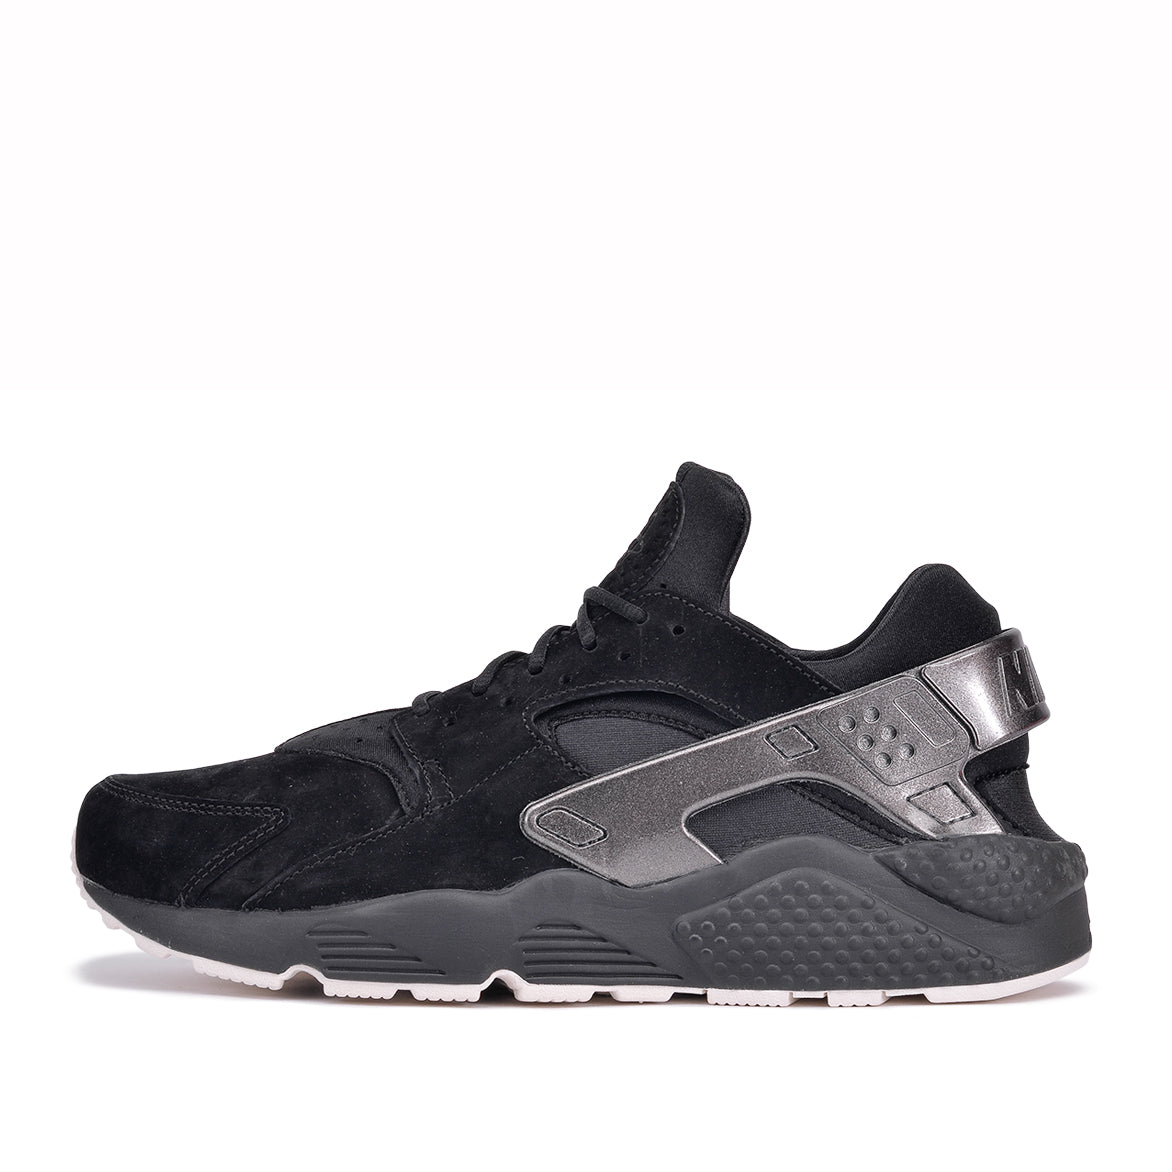 2b28018fe800 AIR HUARACHE RUN PRM - BLACK   METALLIC BLACK